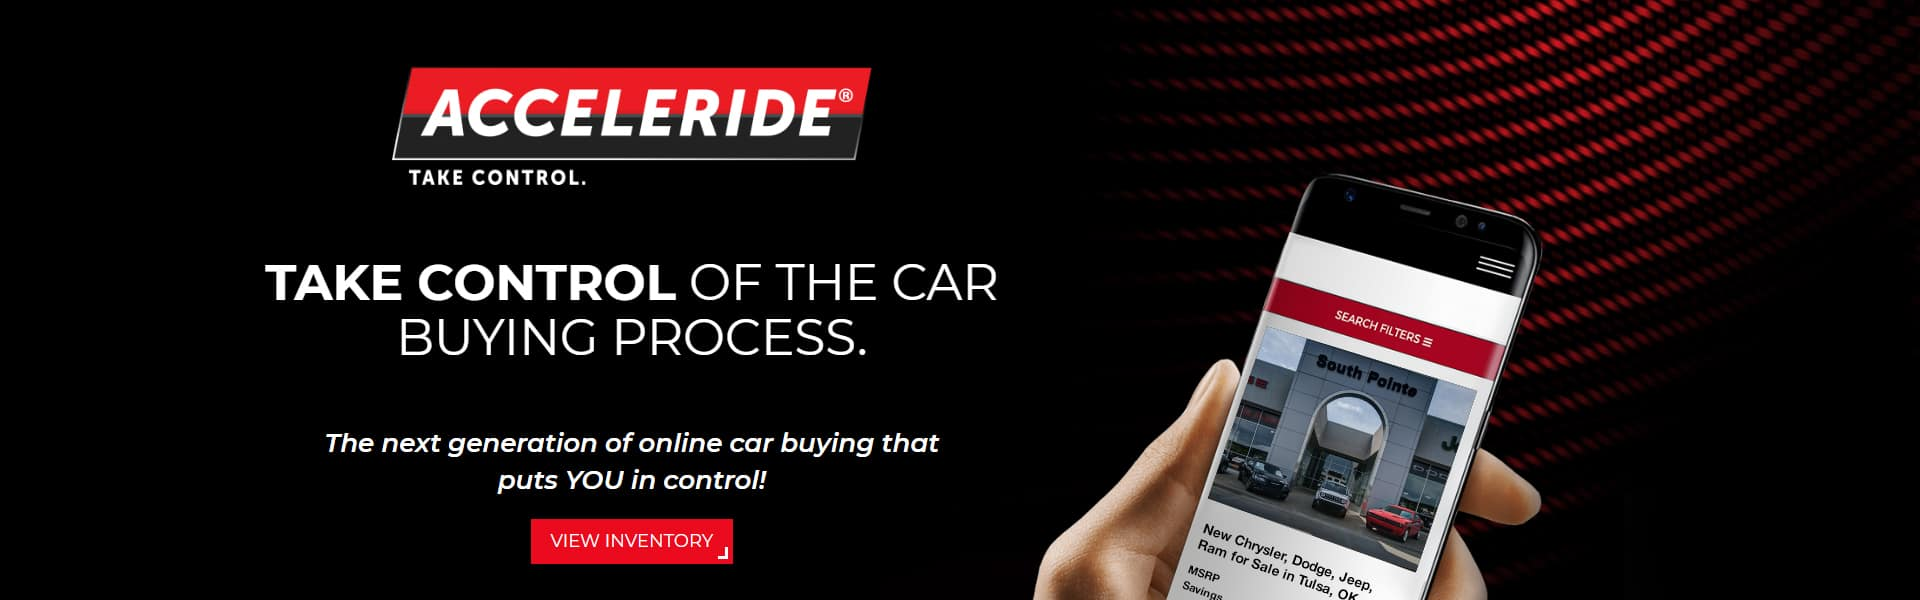 acceleride-take-control-of-the-car-buying-process